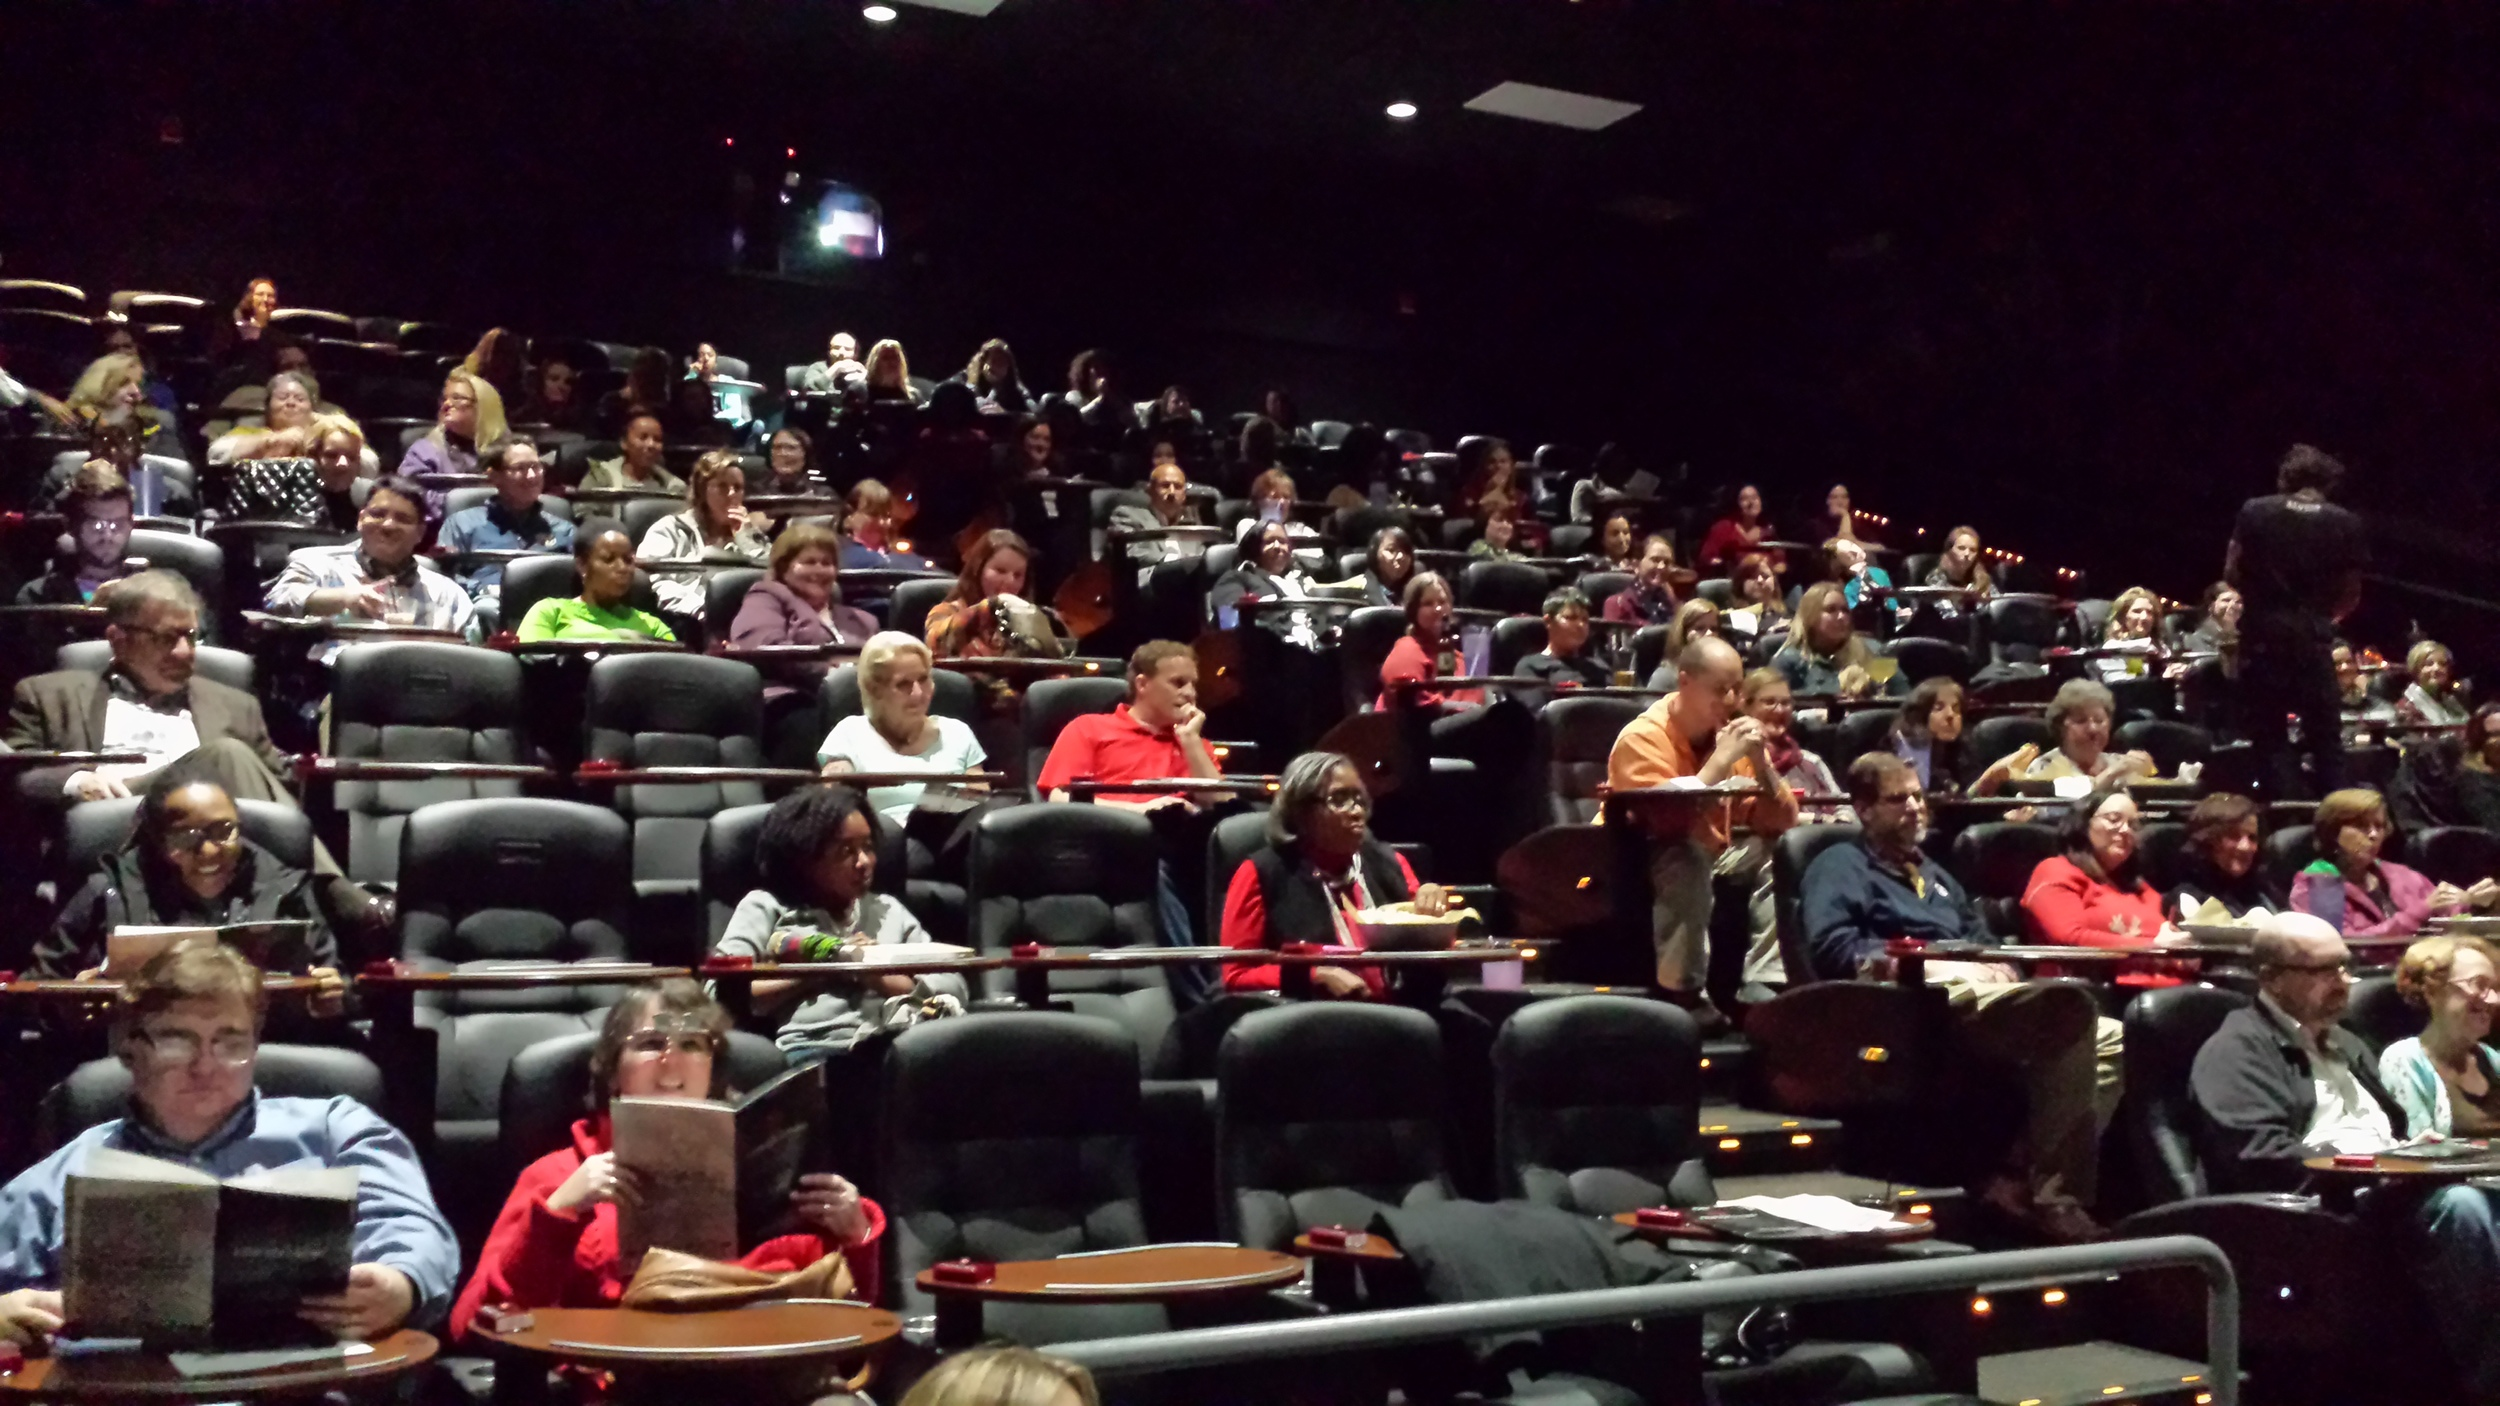 Attendees gather for the movie at the Epicenter.